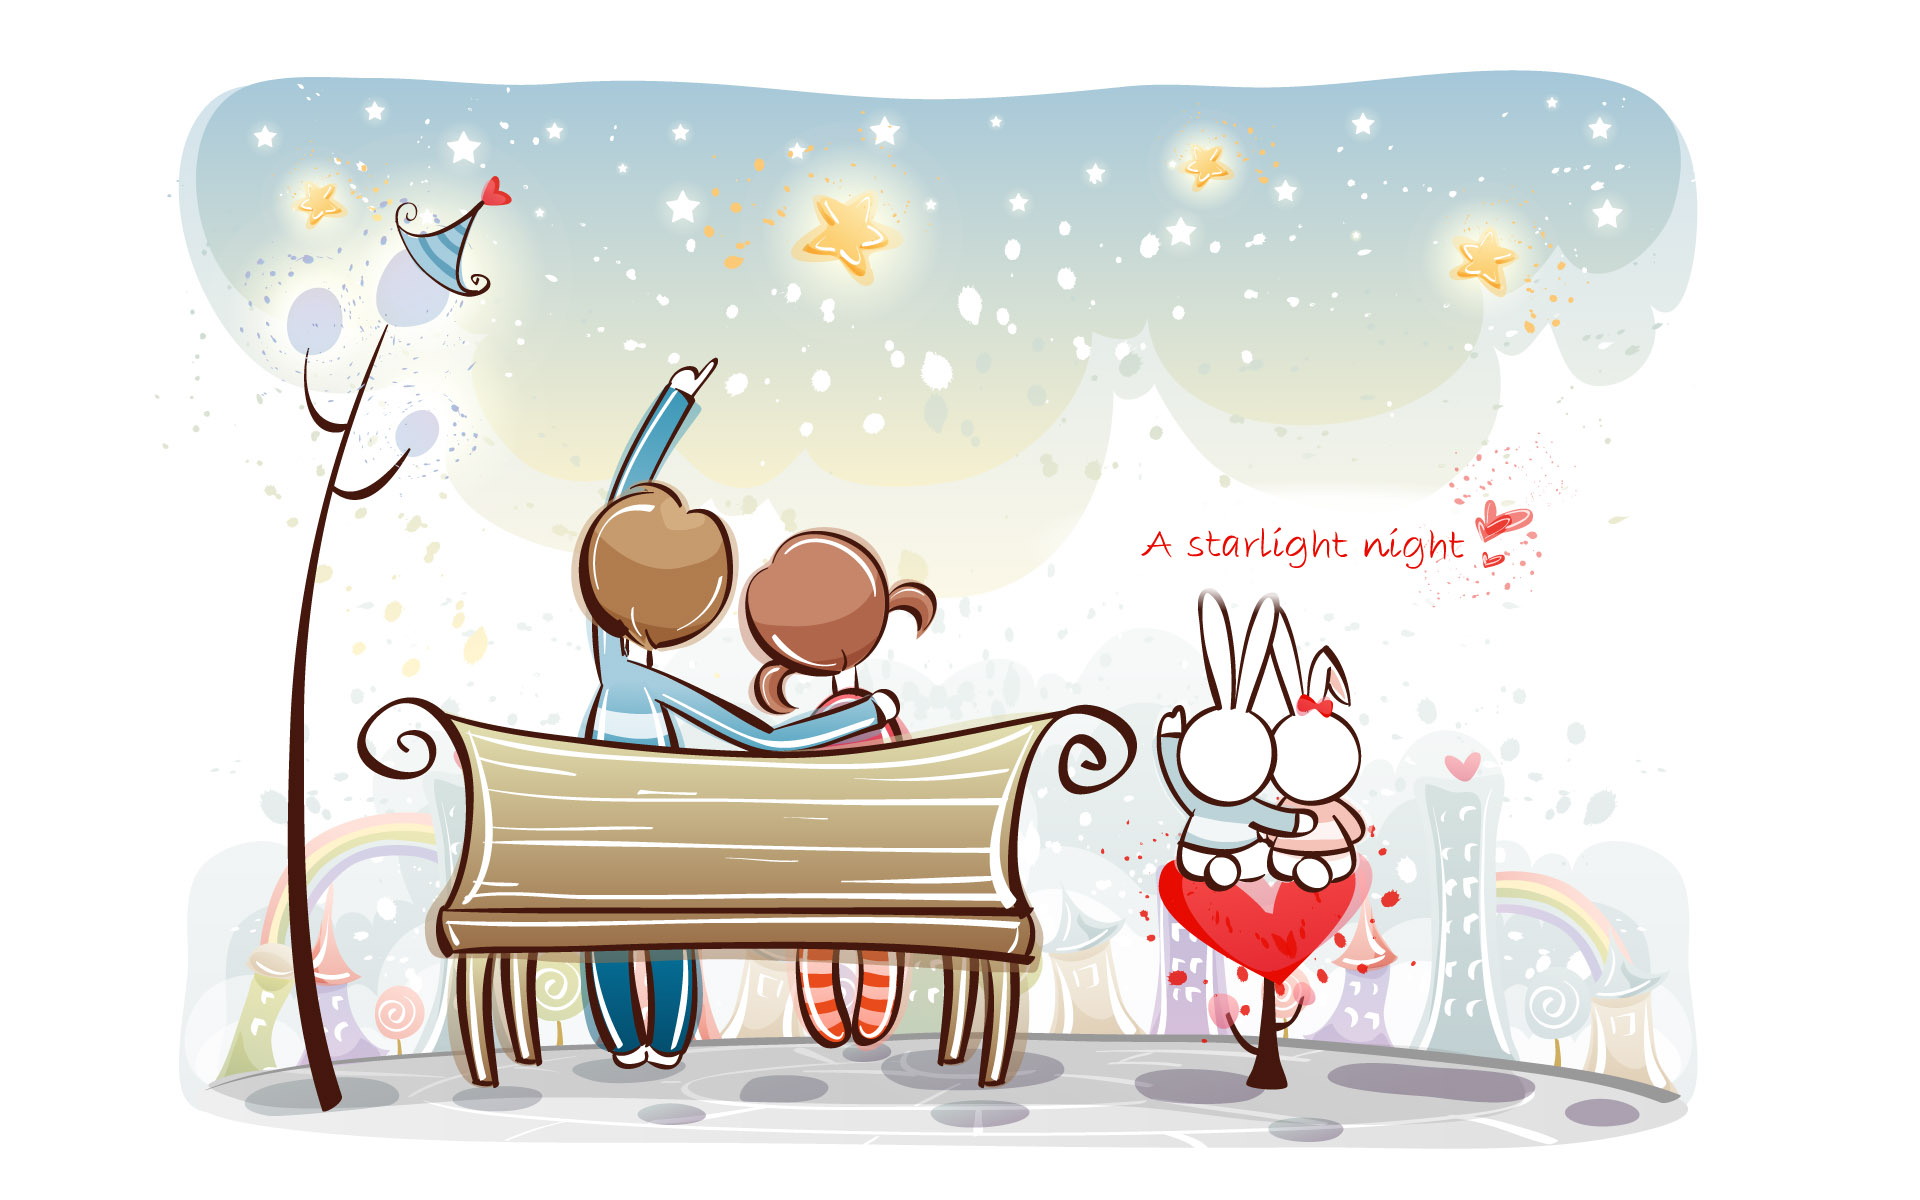 Romantic Valentine's Day illustration class 9593